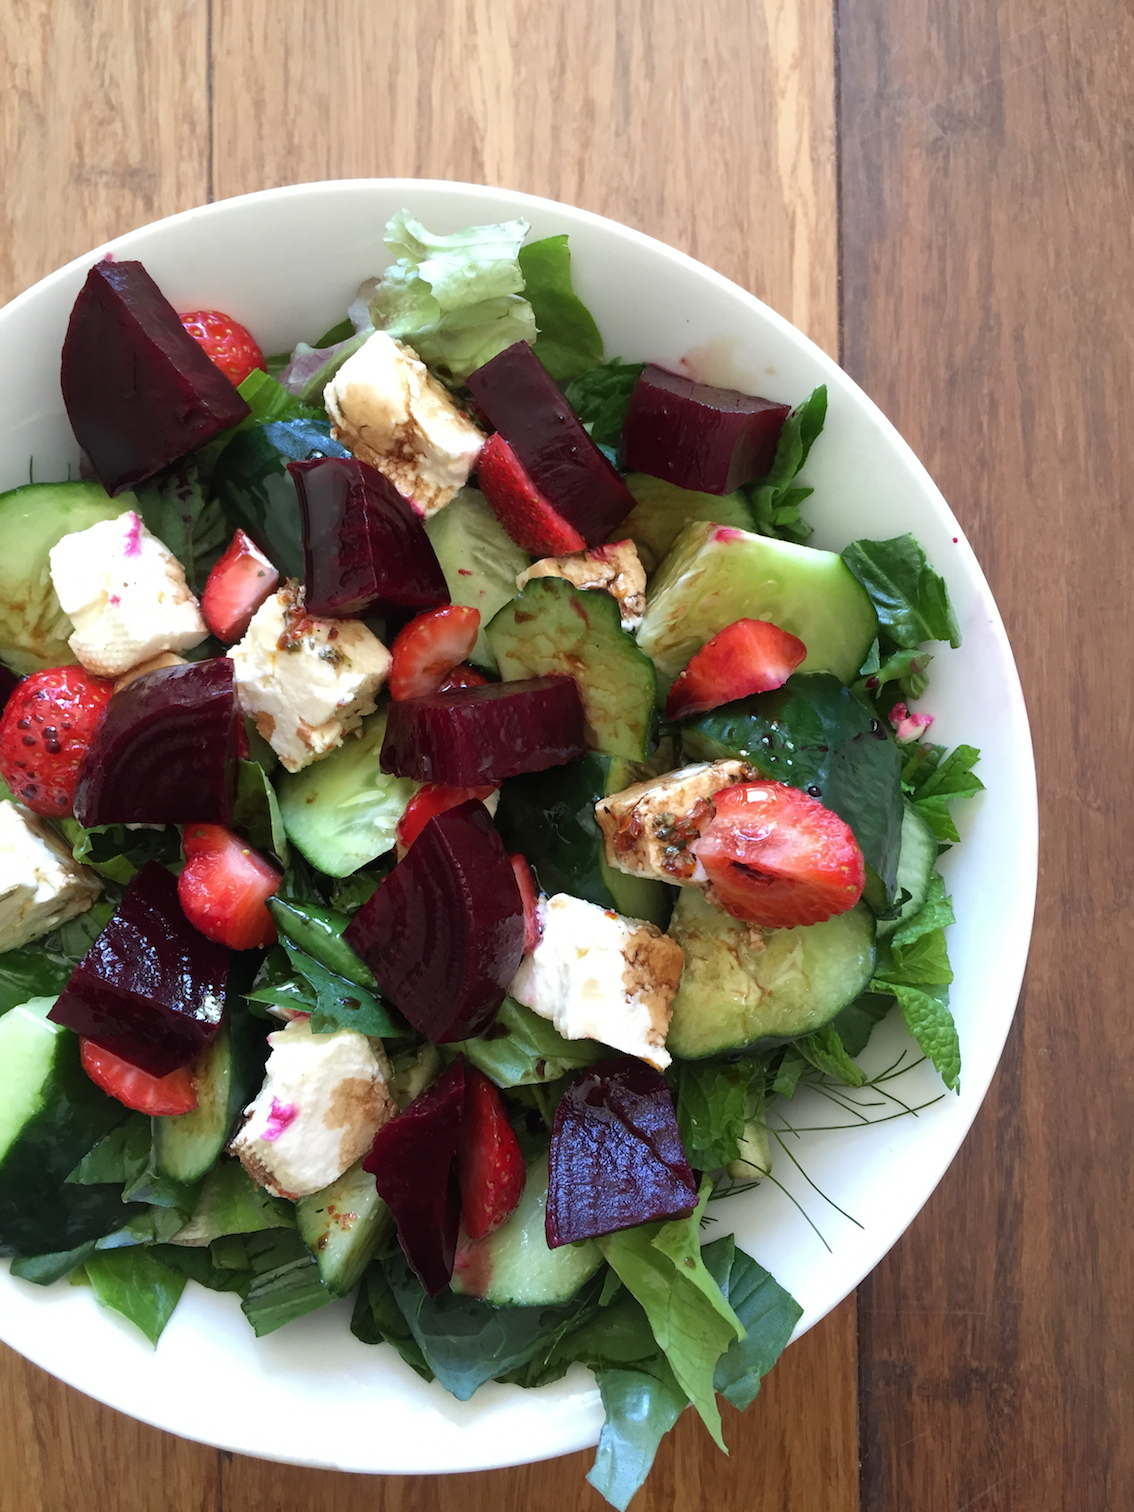 Delicious in a salad with mixed greens and herbs, cucumber, feta and strawberries.